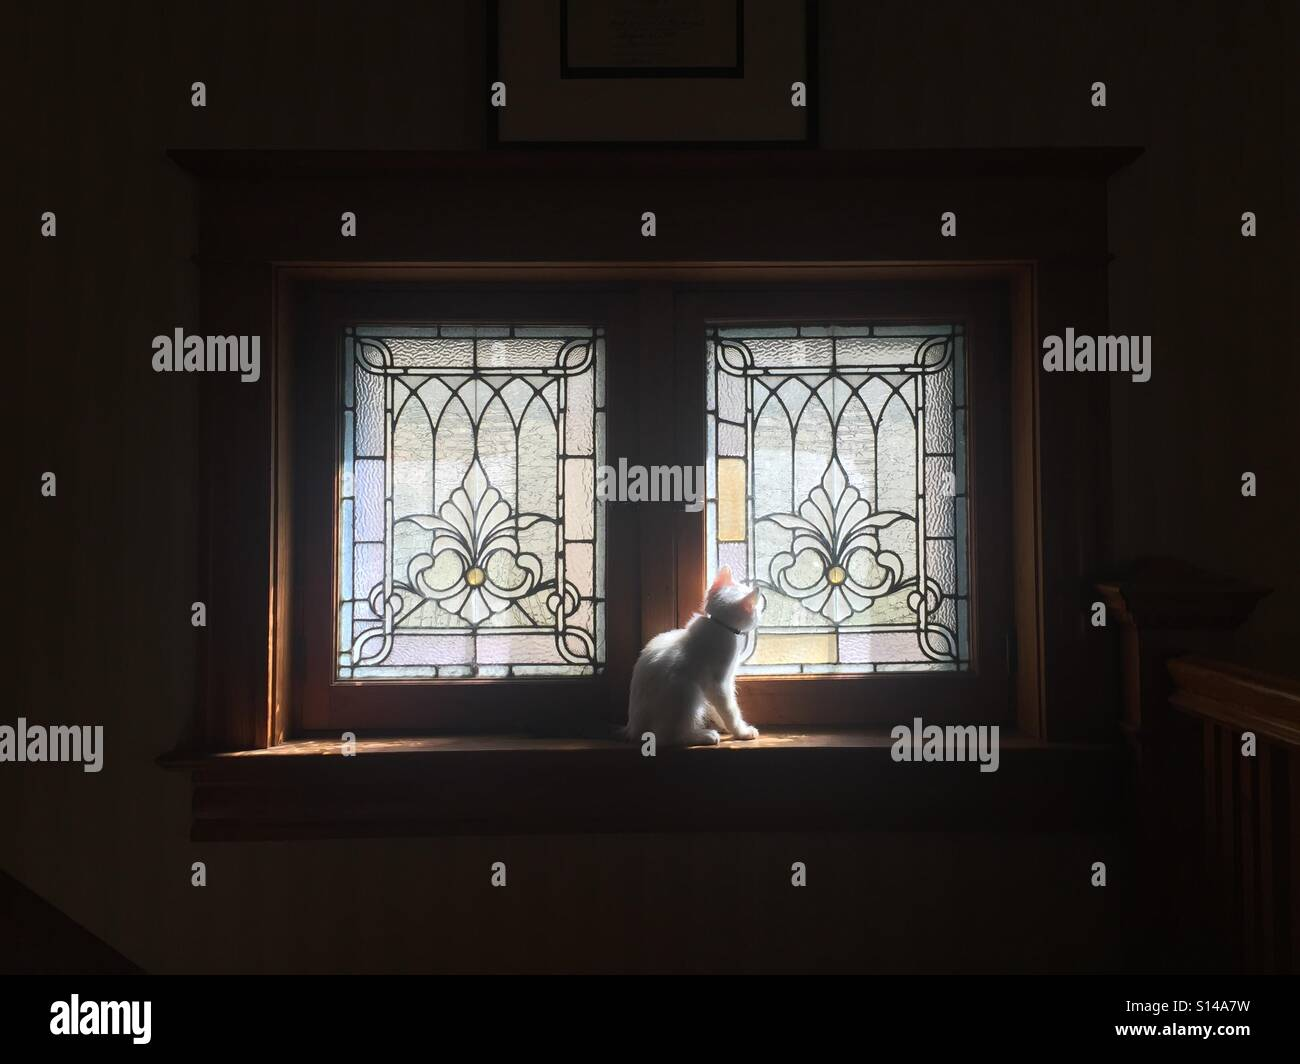 A white kitten sits in front of a stained glass window in pretty light. - Stock Image